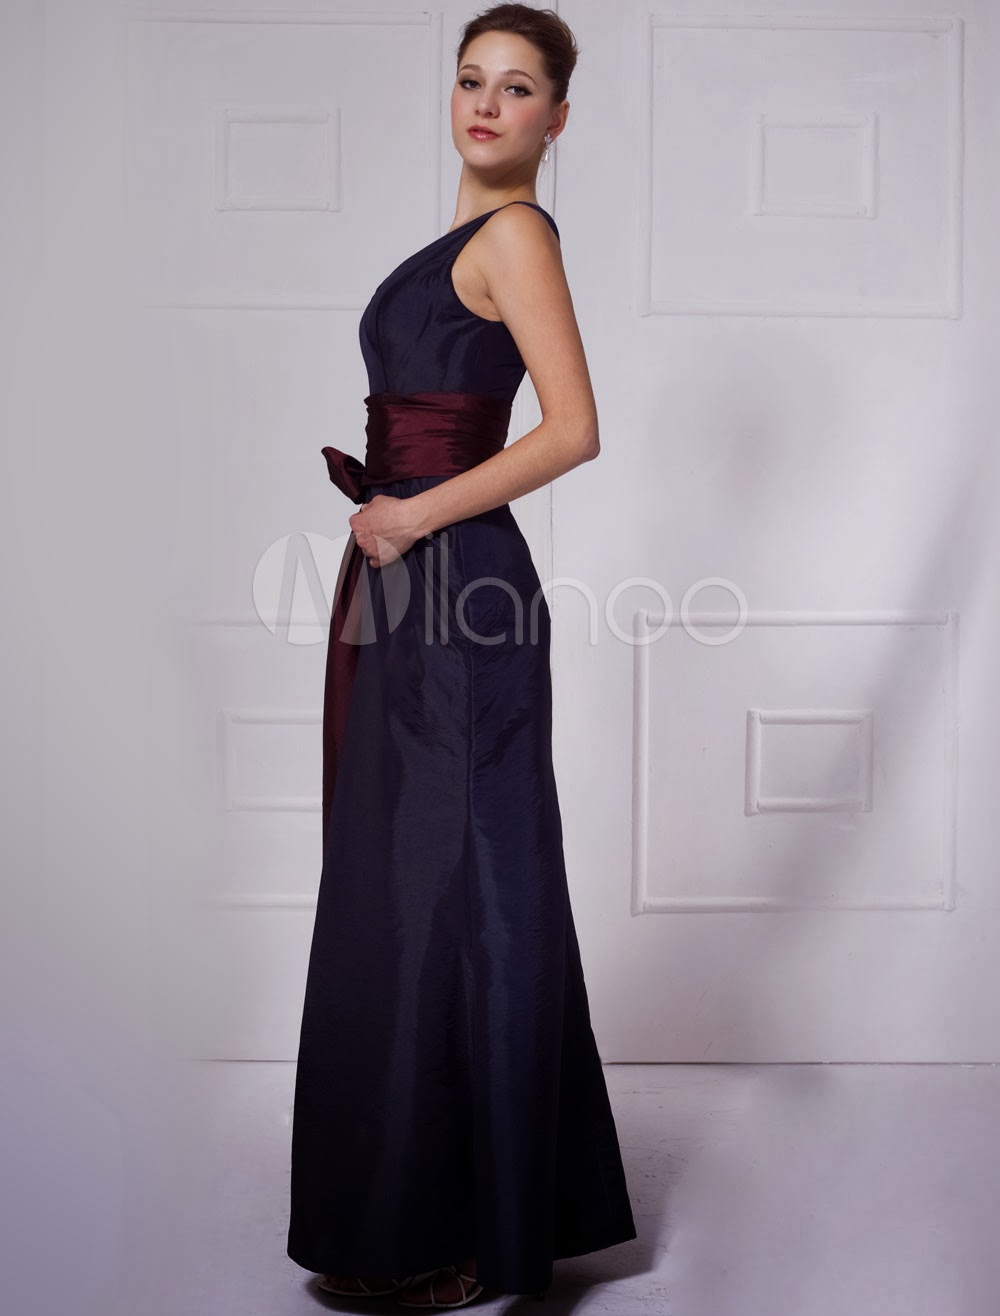 China Wholesale Dresses - Gorgeous V-Neck Sash Taffeta Evening Dress